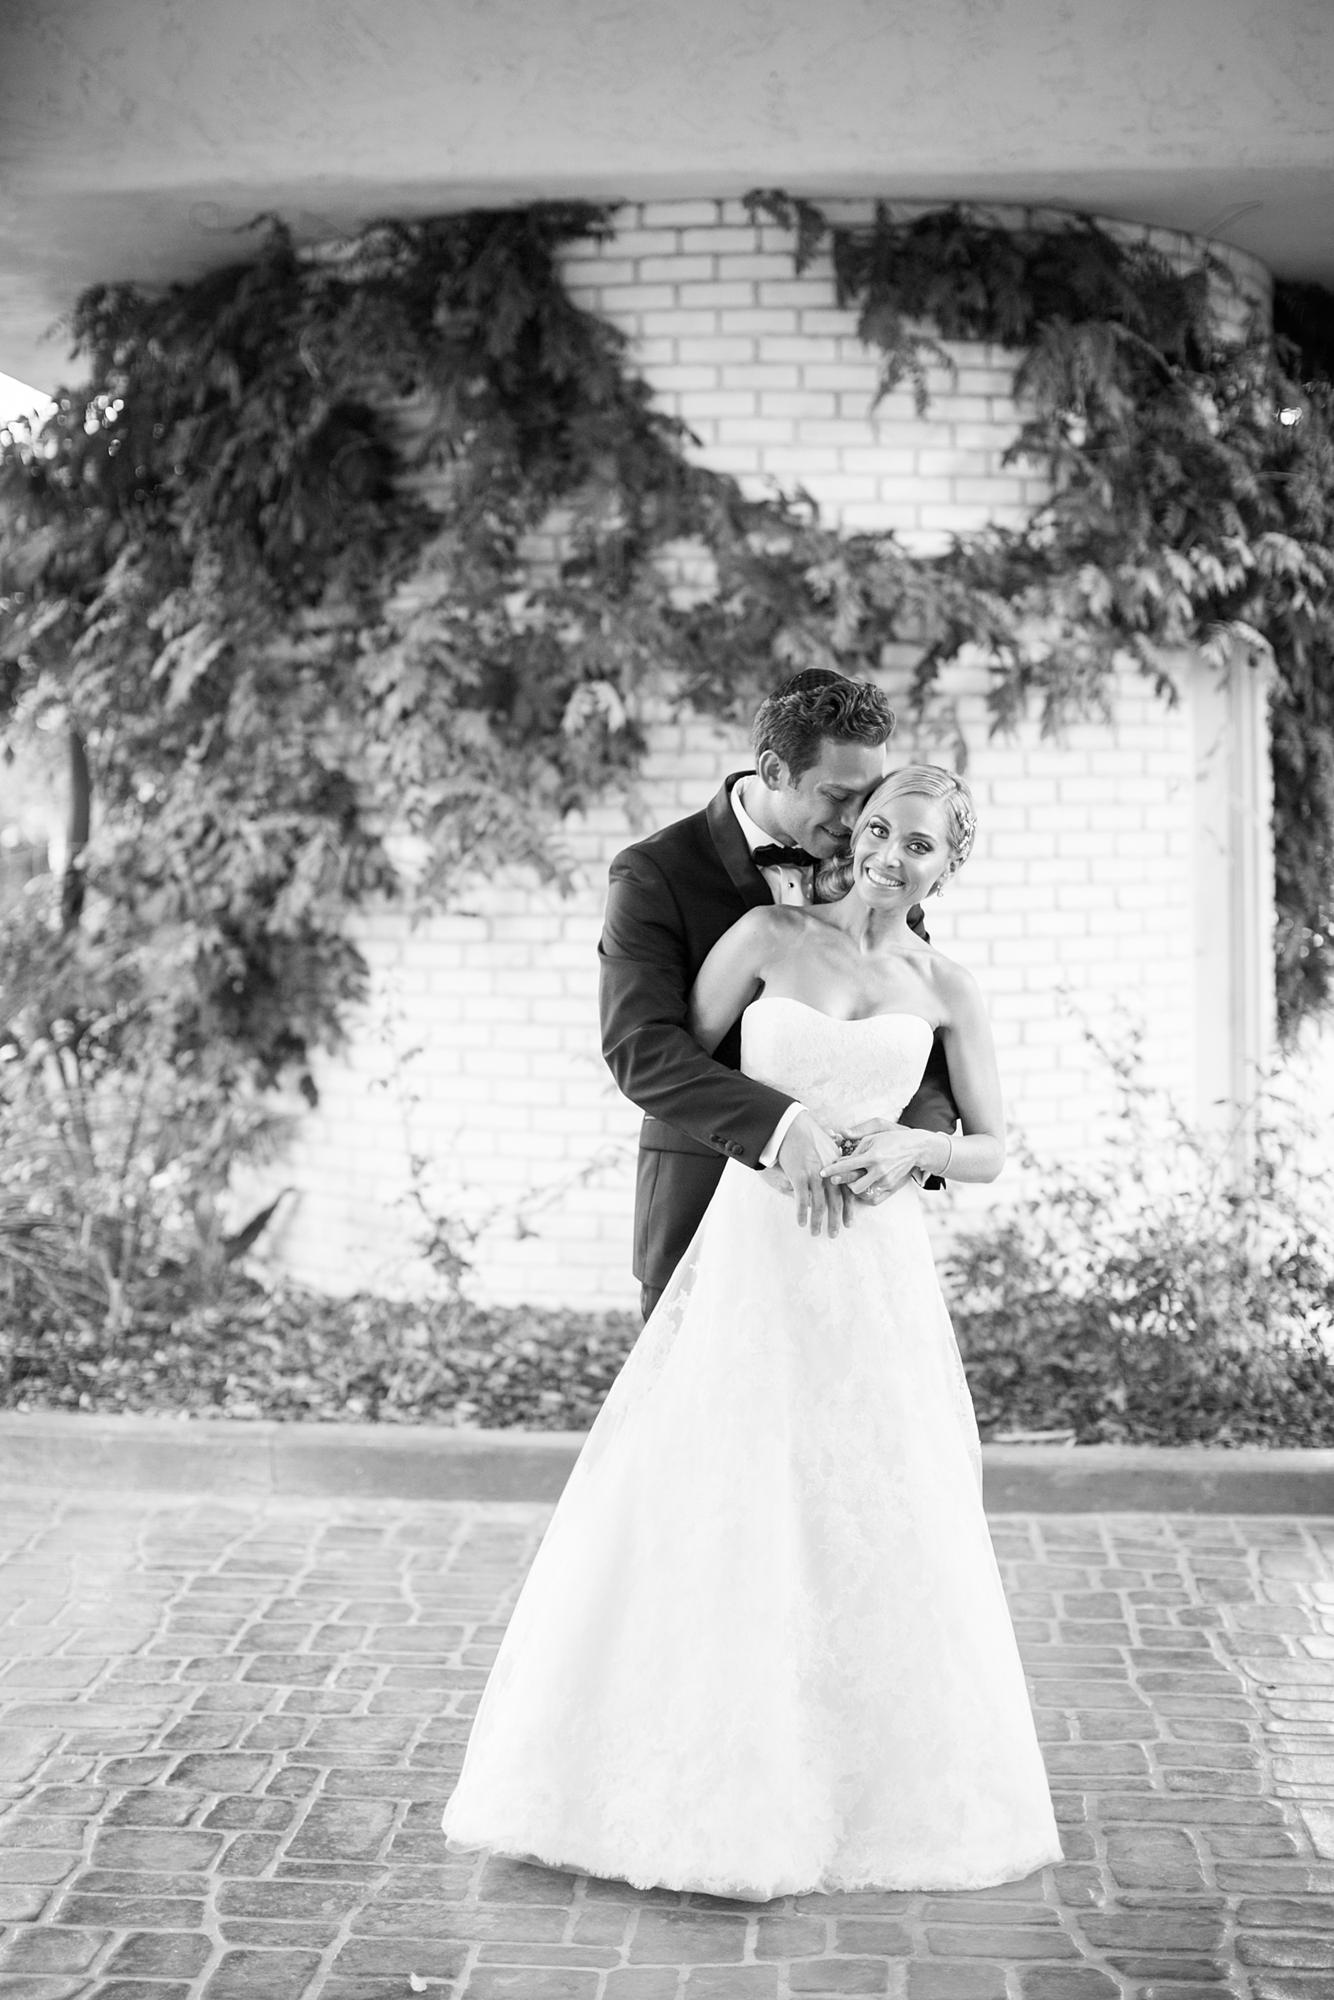 The Vineyards Simi Valley Wedding | Miki & Sonja Photography | mikiandsonja.com